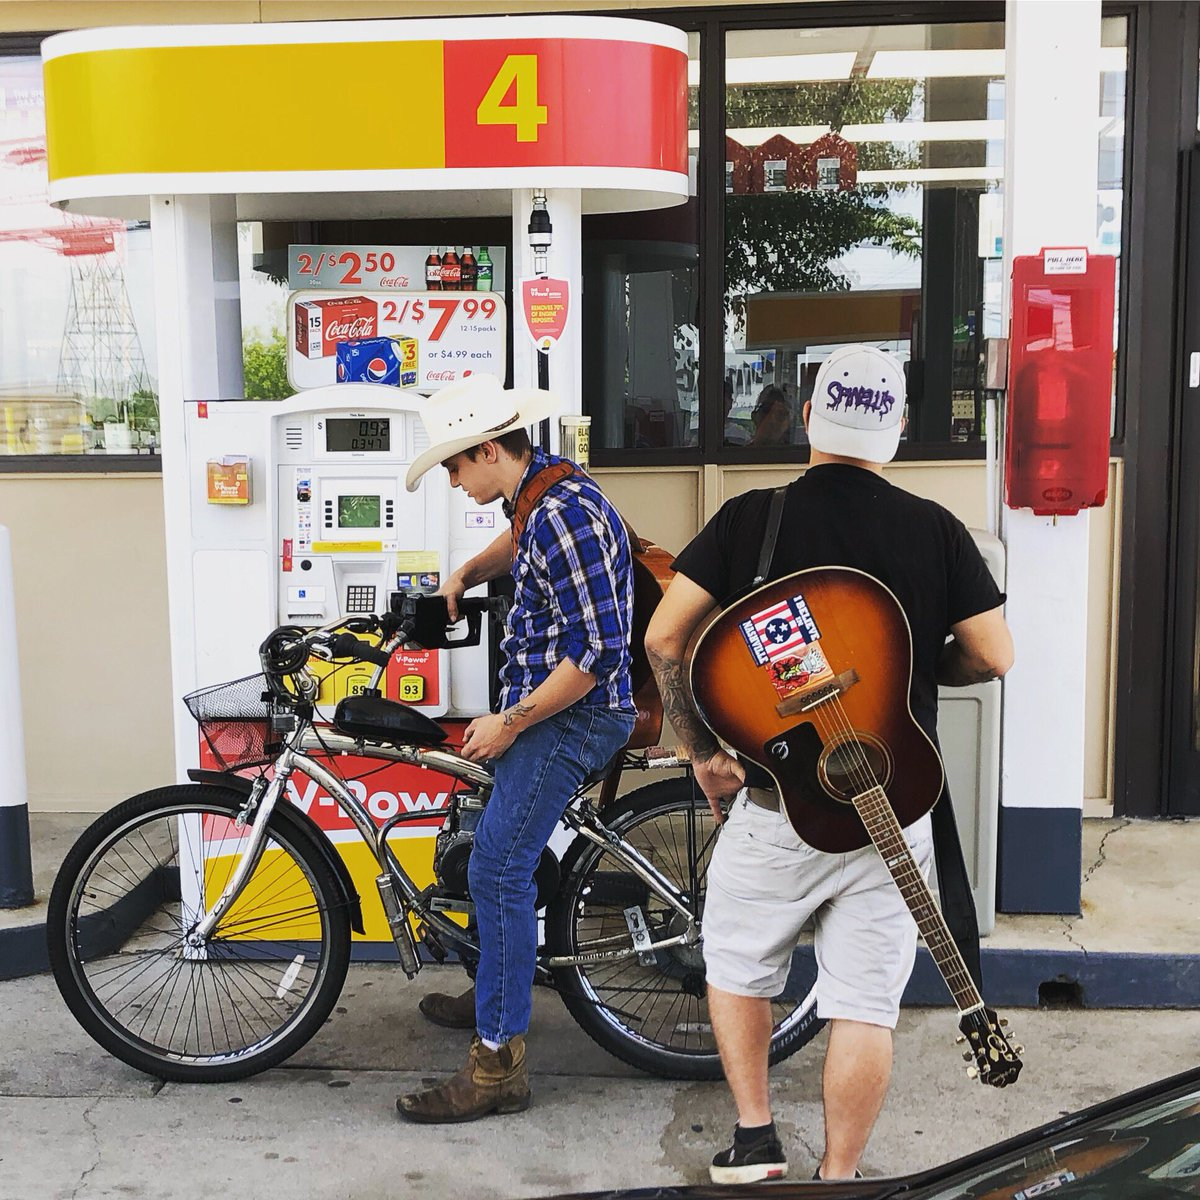 Why I like #nashville ... 2 guys rolling into the gas station on a pedal bike — with a custom motor —putting 1 gallon of gas in it to get to their next busking gig in #12south. The dream has to start somewhere. Go get it. #dreambig #musicianlife #ThursdayThoughts #HappyMidsummer <br>http://pic.twitter.com/l8RniRDgpK